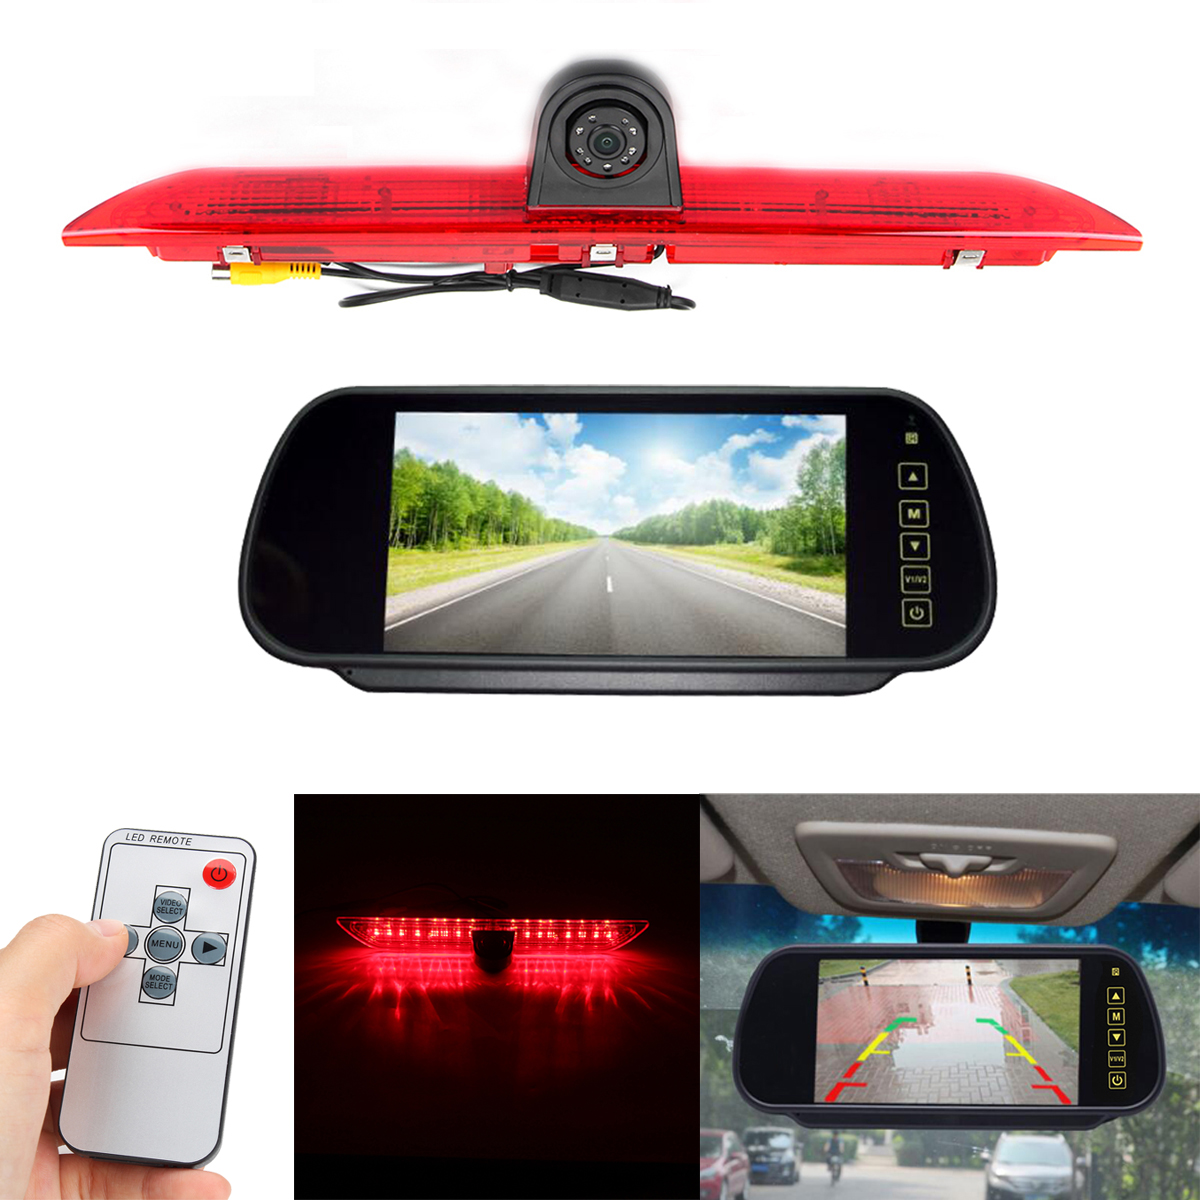 LED Brake Light Car Rear View Camera + 7 Inch Monitor Kit for Ford Transit